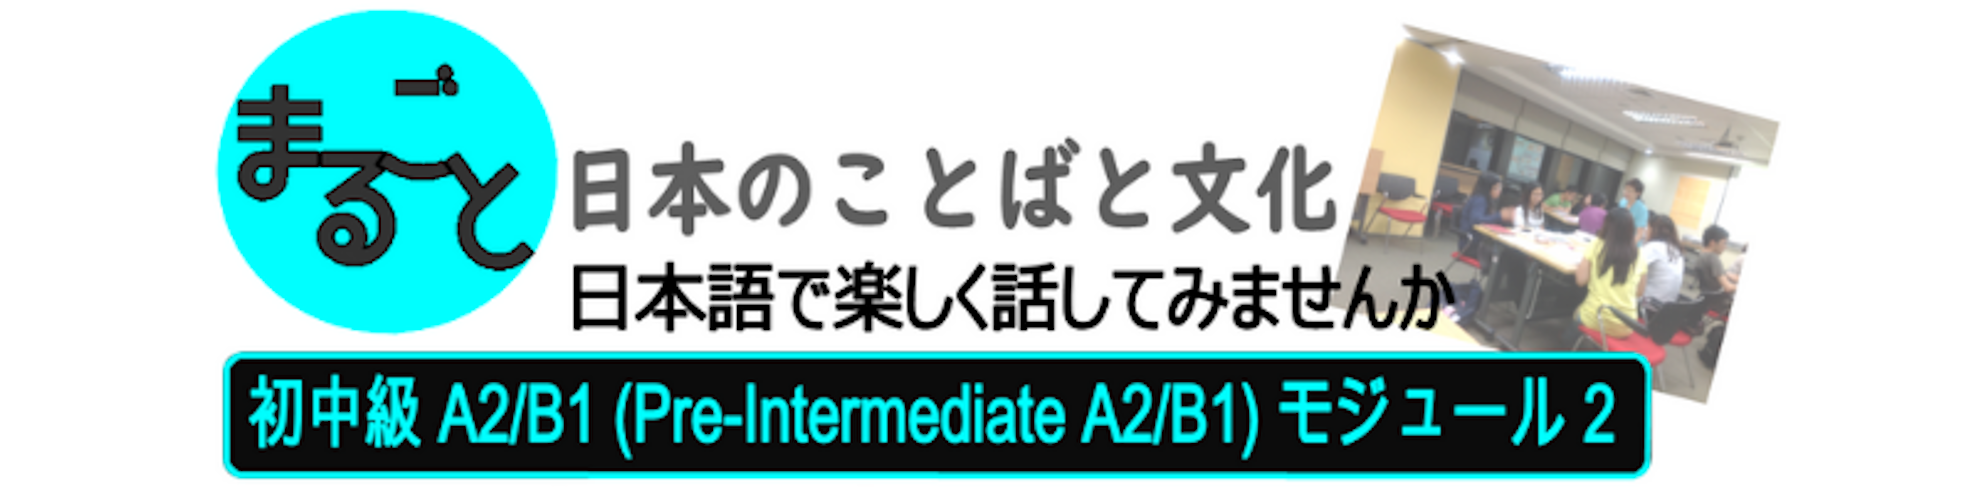 MARUGOTO Pre-Intermediate Japanese: A2/B1 Module 2 – Application Deadline: March 30 (Mon.)